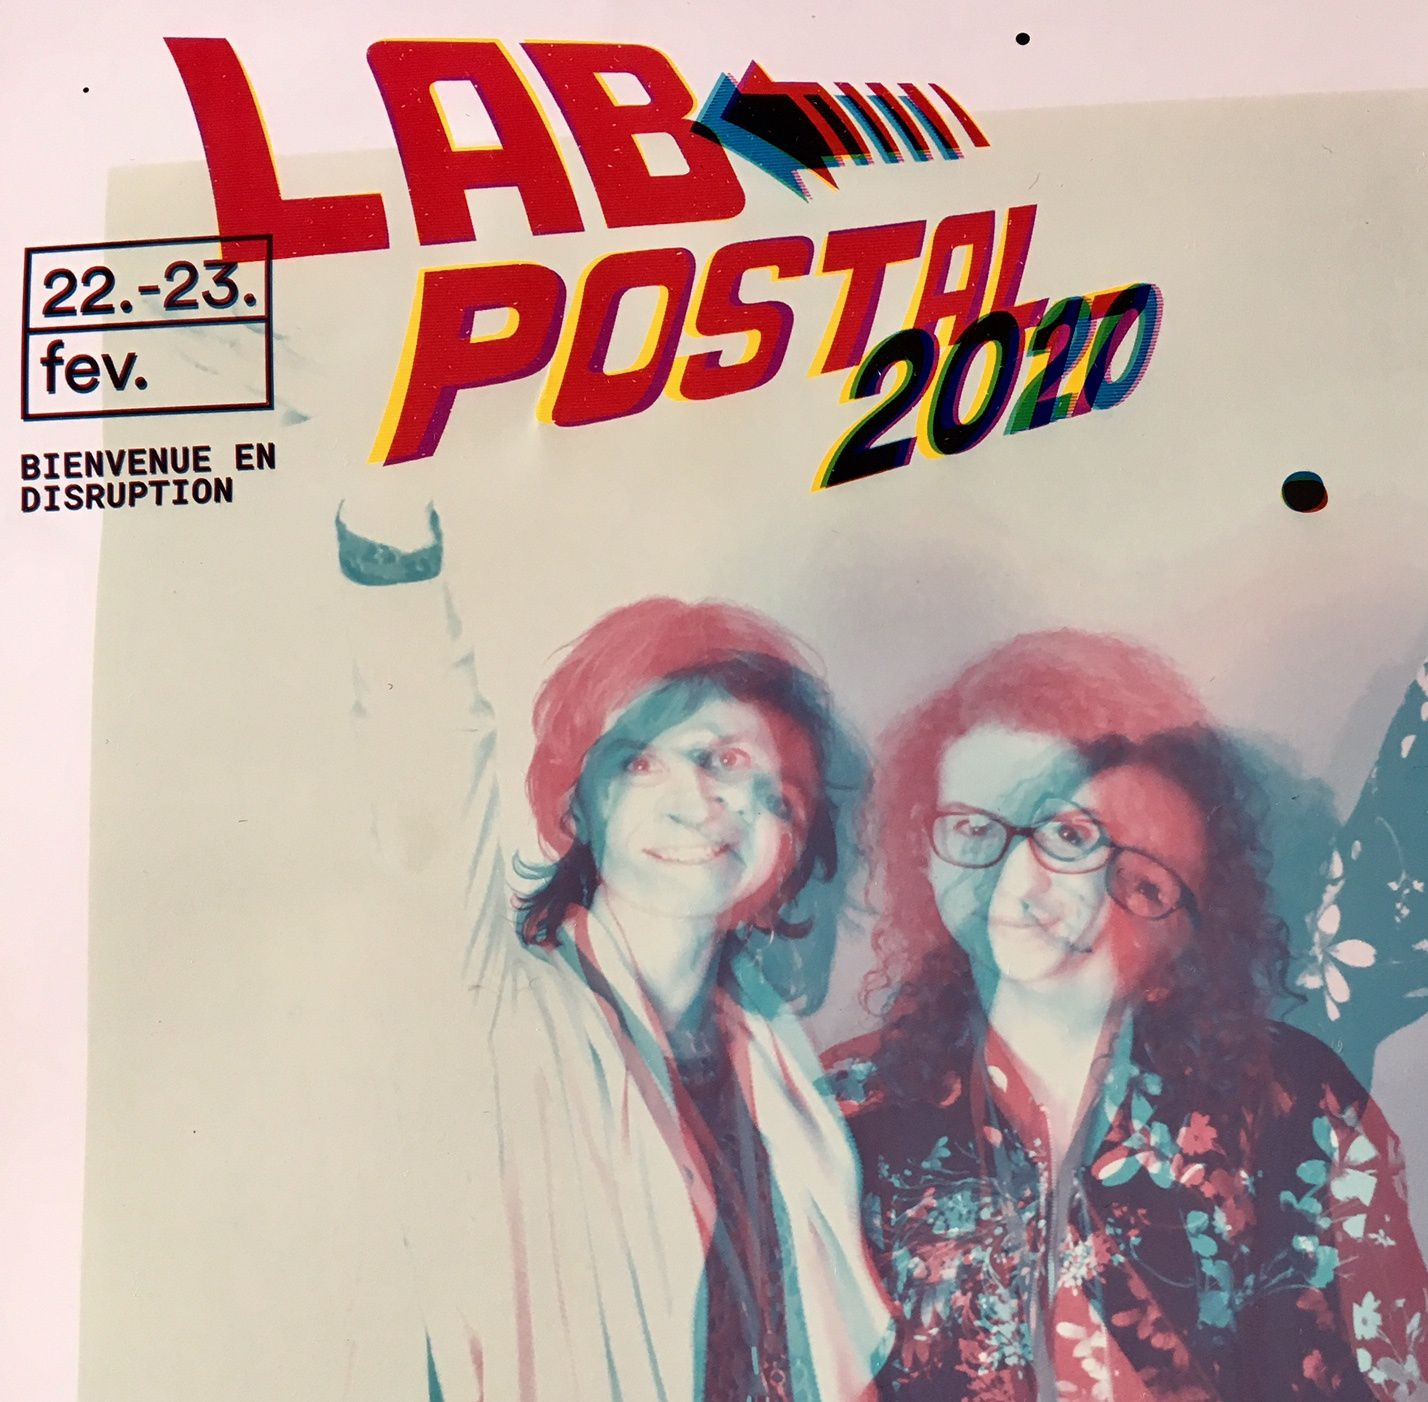 Le Lab Postal 2017 ou l'immersion de la disruption ! #LabPostal2017